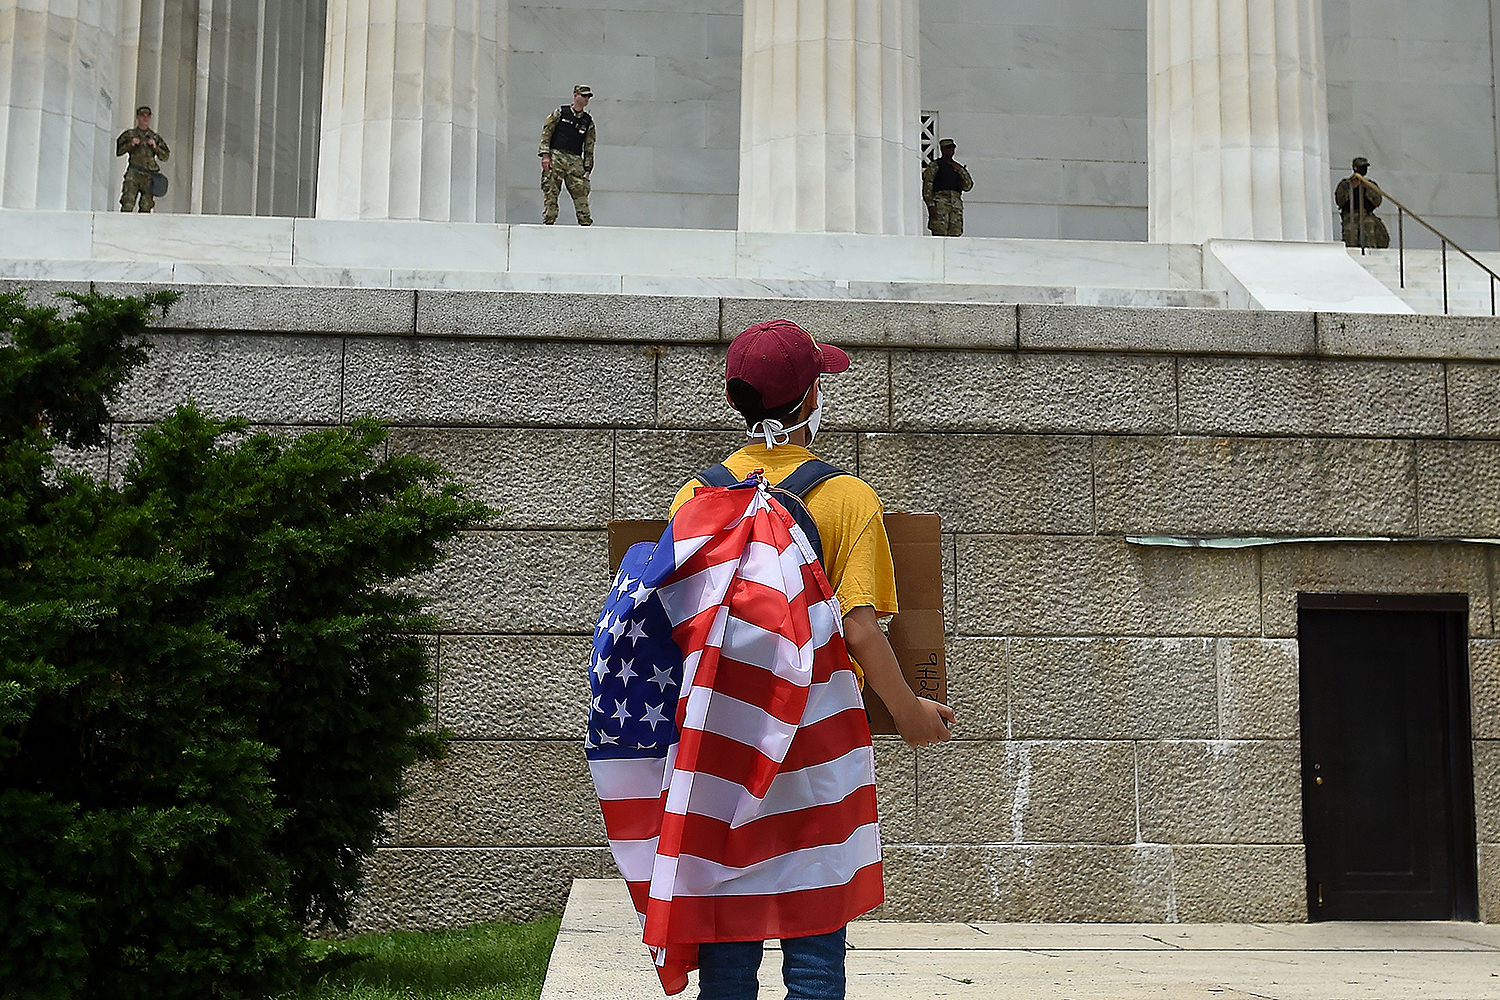 A protester faces National Guard members standing watch at the Lincoln Memorial in Washington, D.C., on June 6 during a protest against police brutality and racism. OLIVIER DOULIERY/AFP via Getty Images